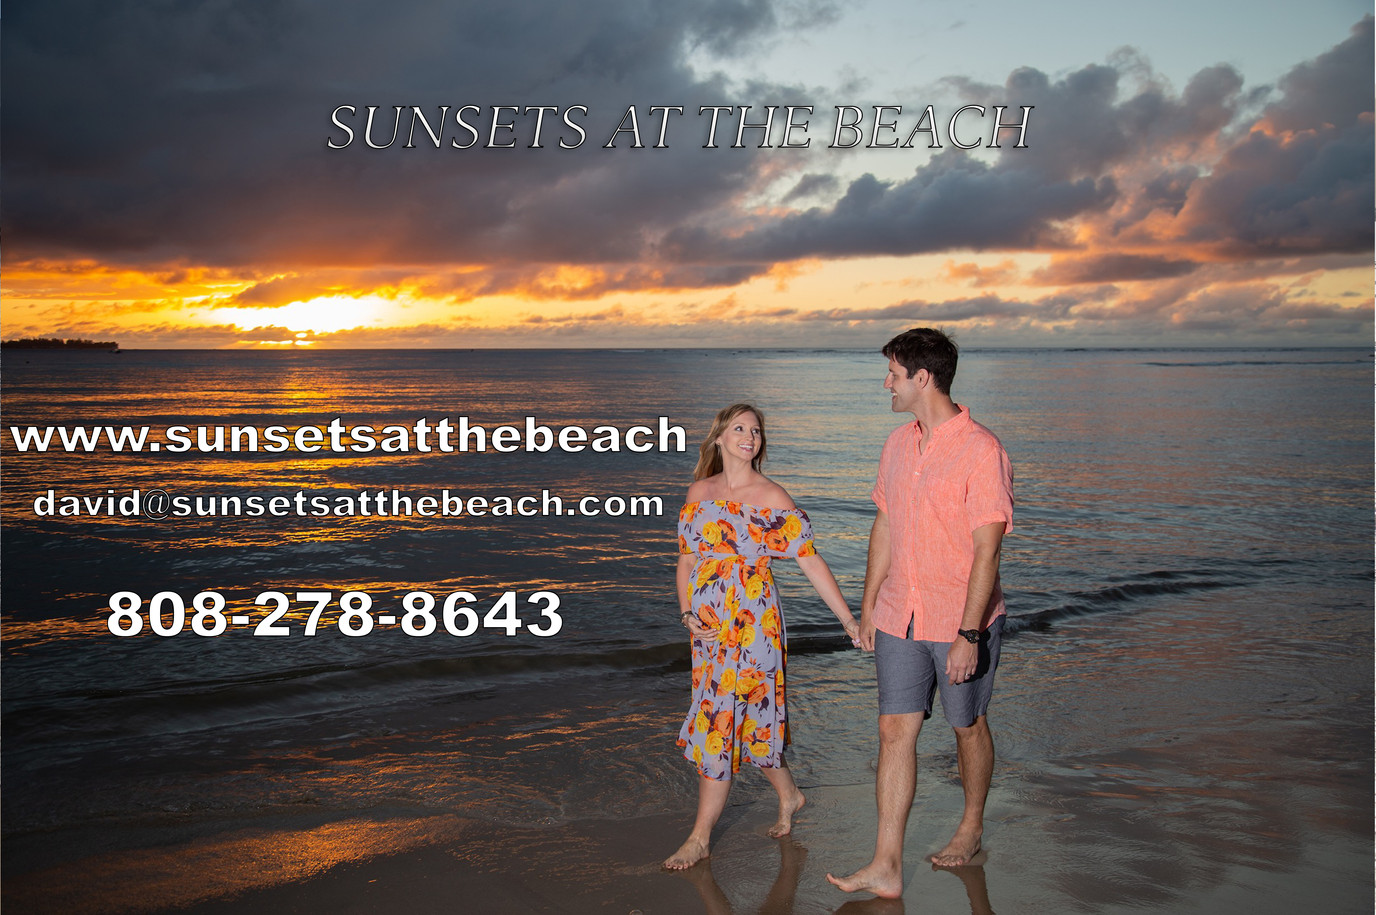 contact sunsets at the beach.jpg